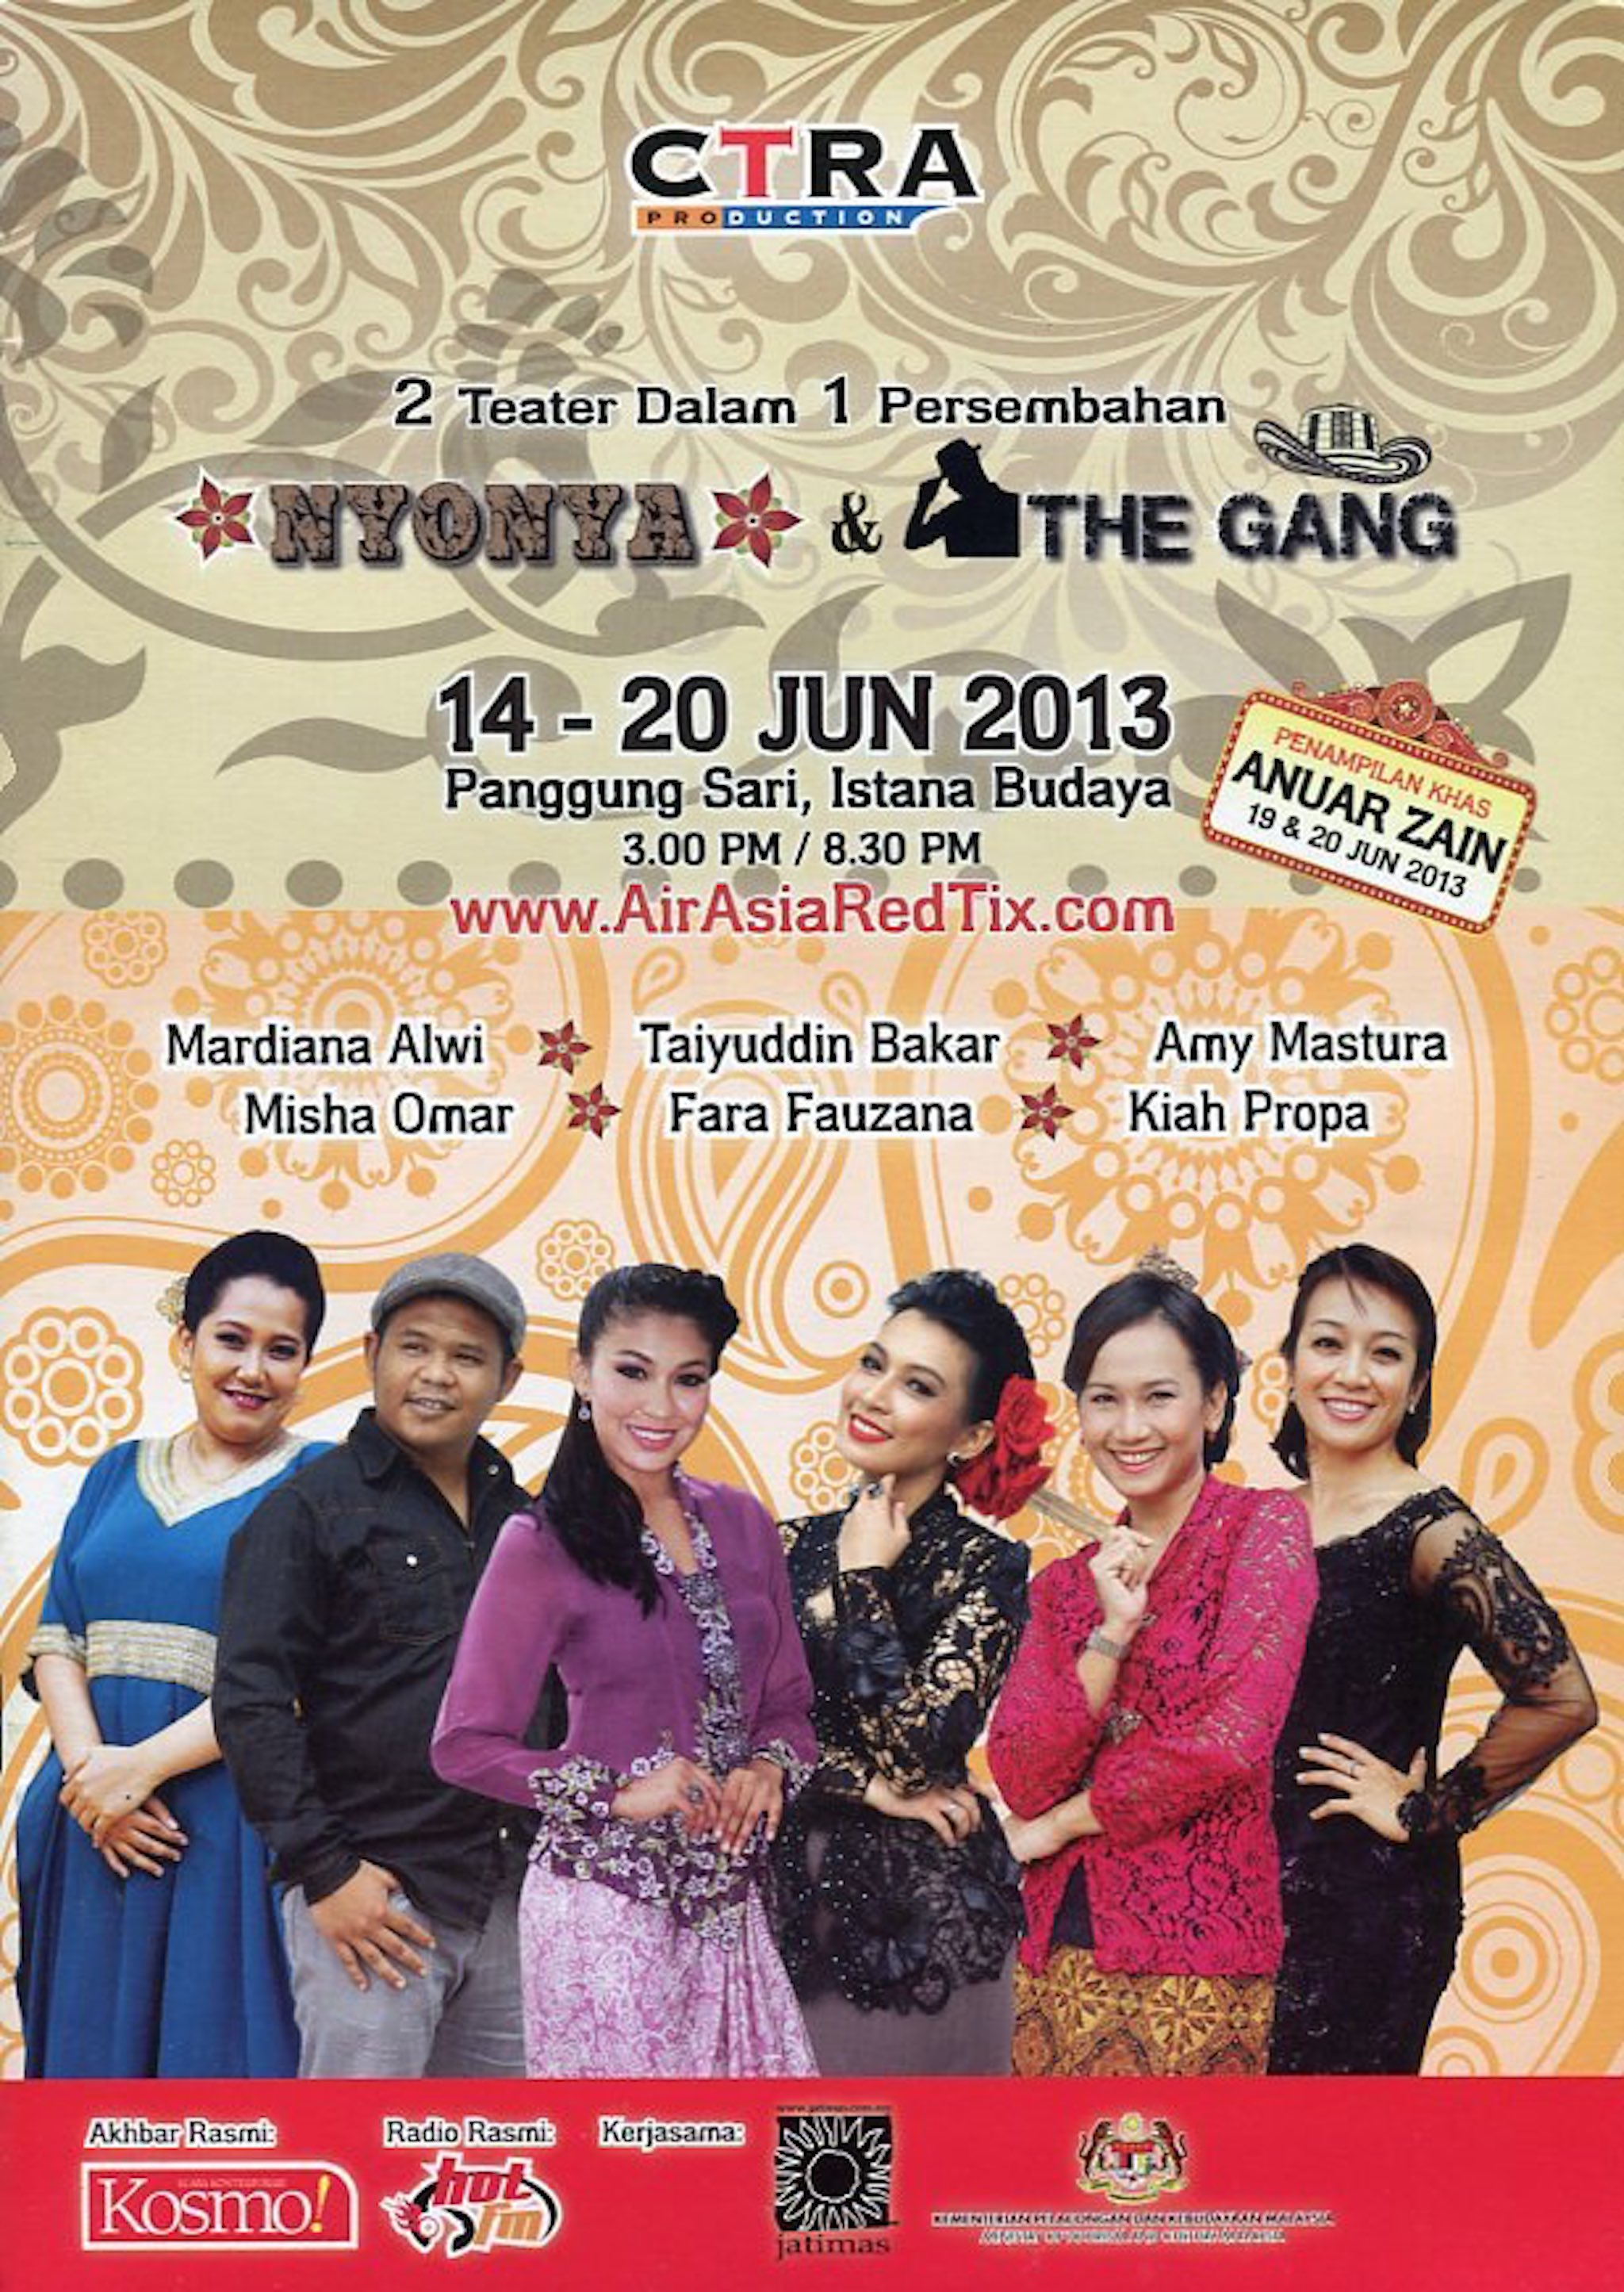 2013 Nyonya & The Gang cover